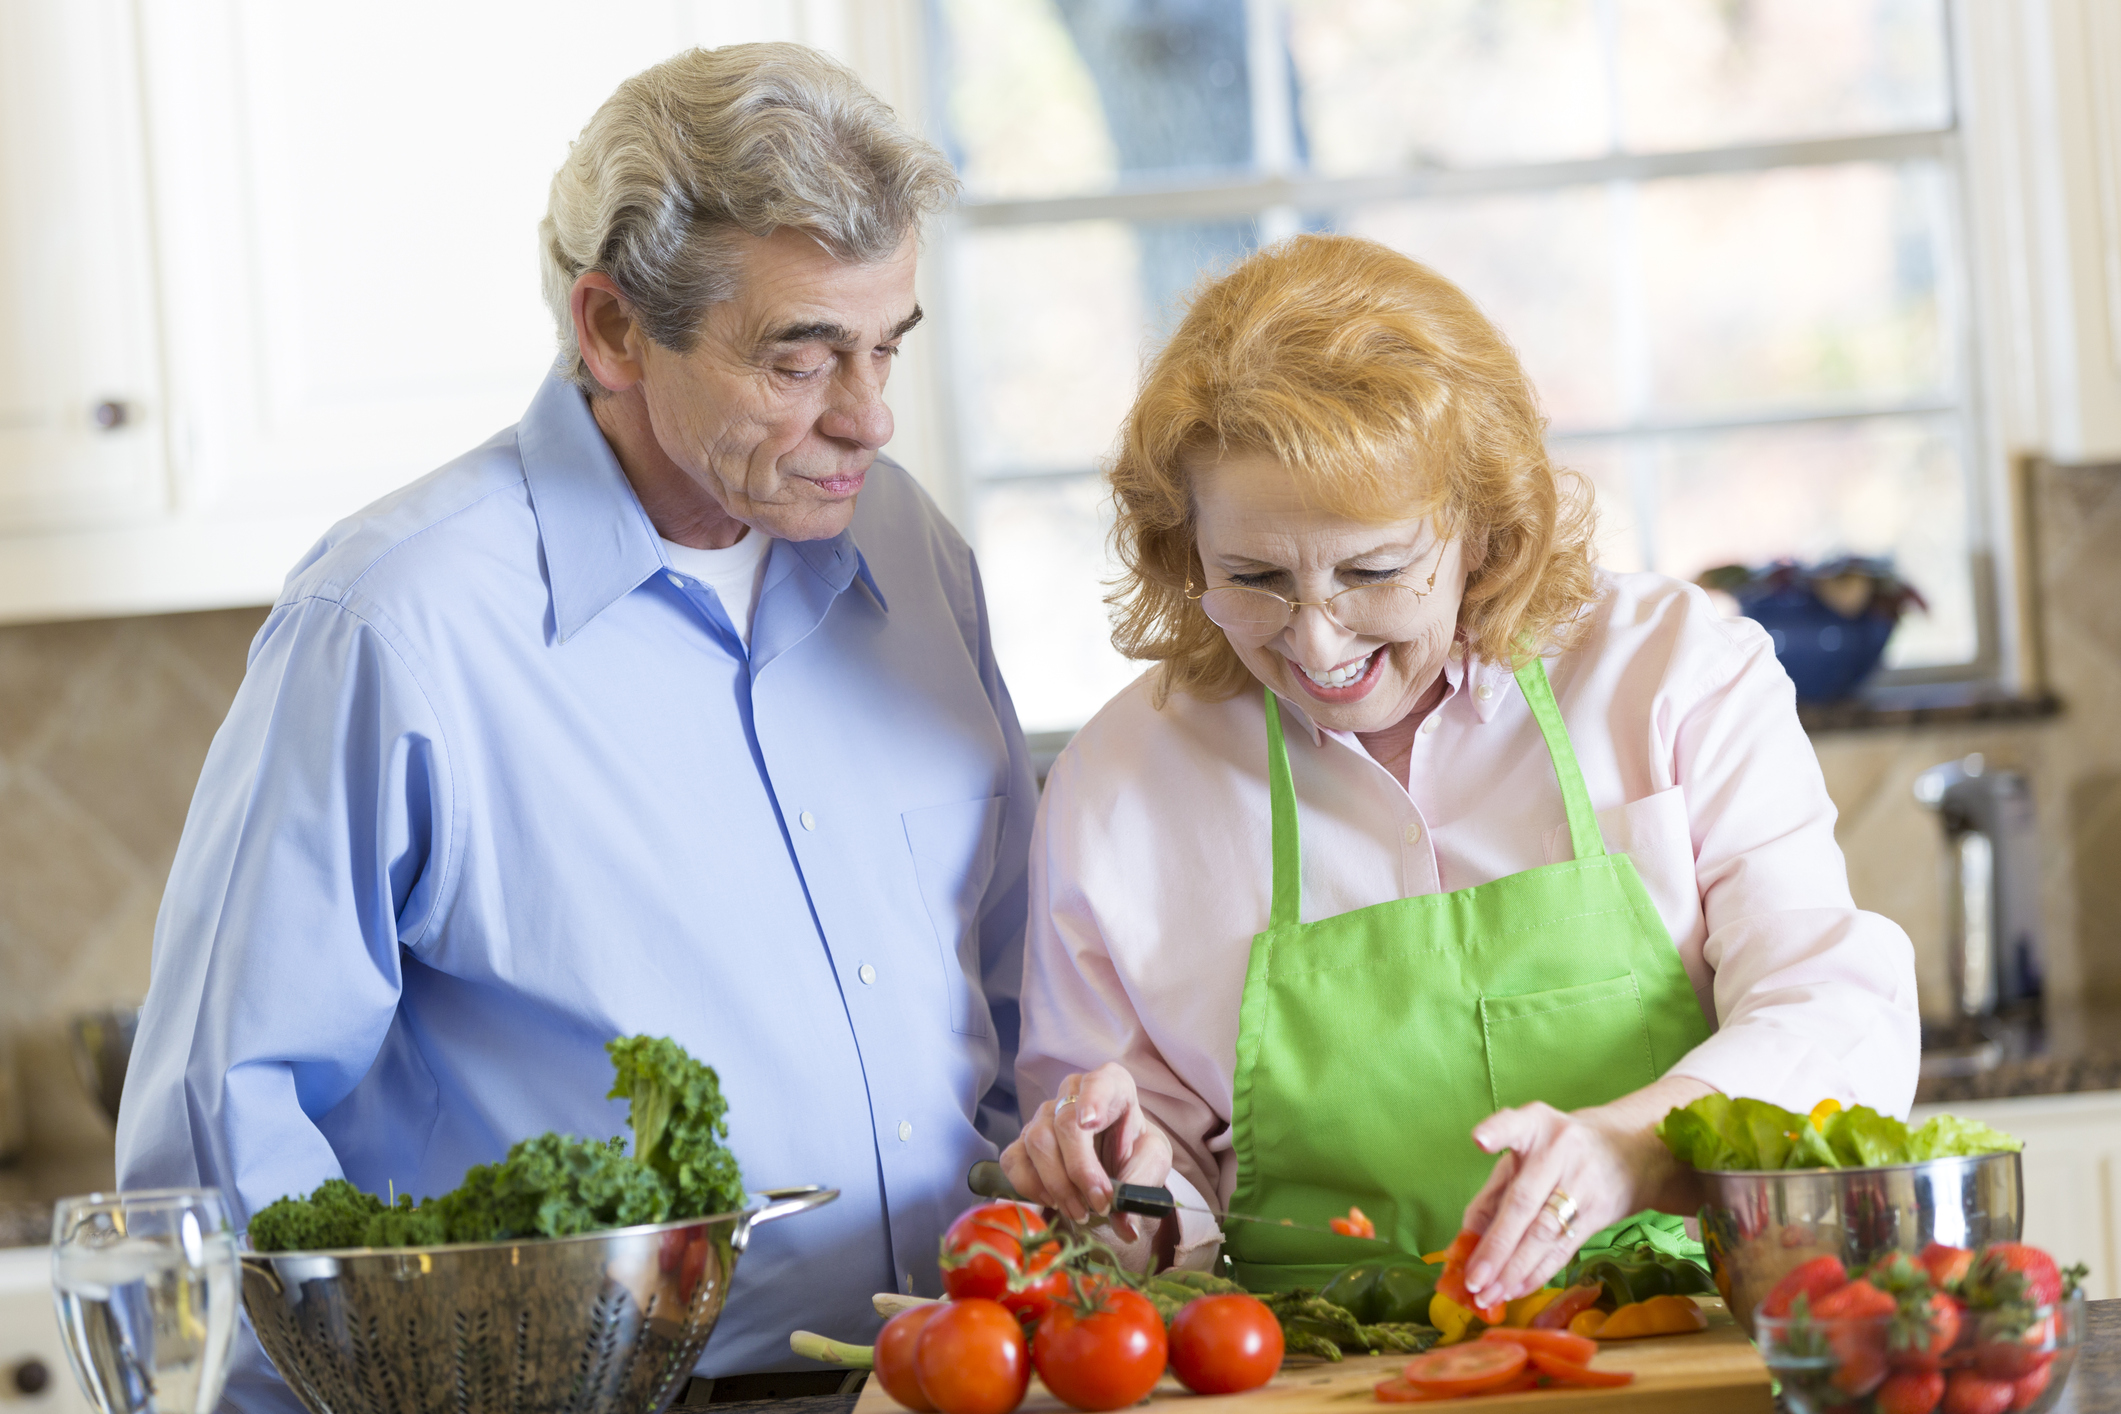 Couple prepares healthy meal together at home. (Getty Images)